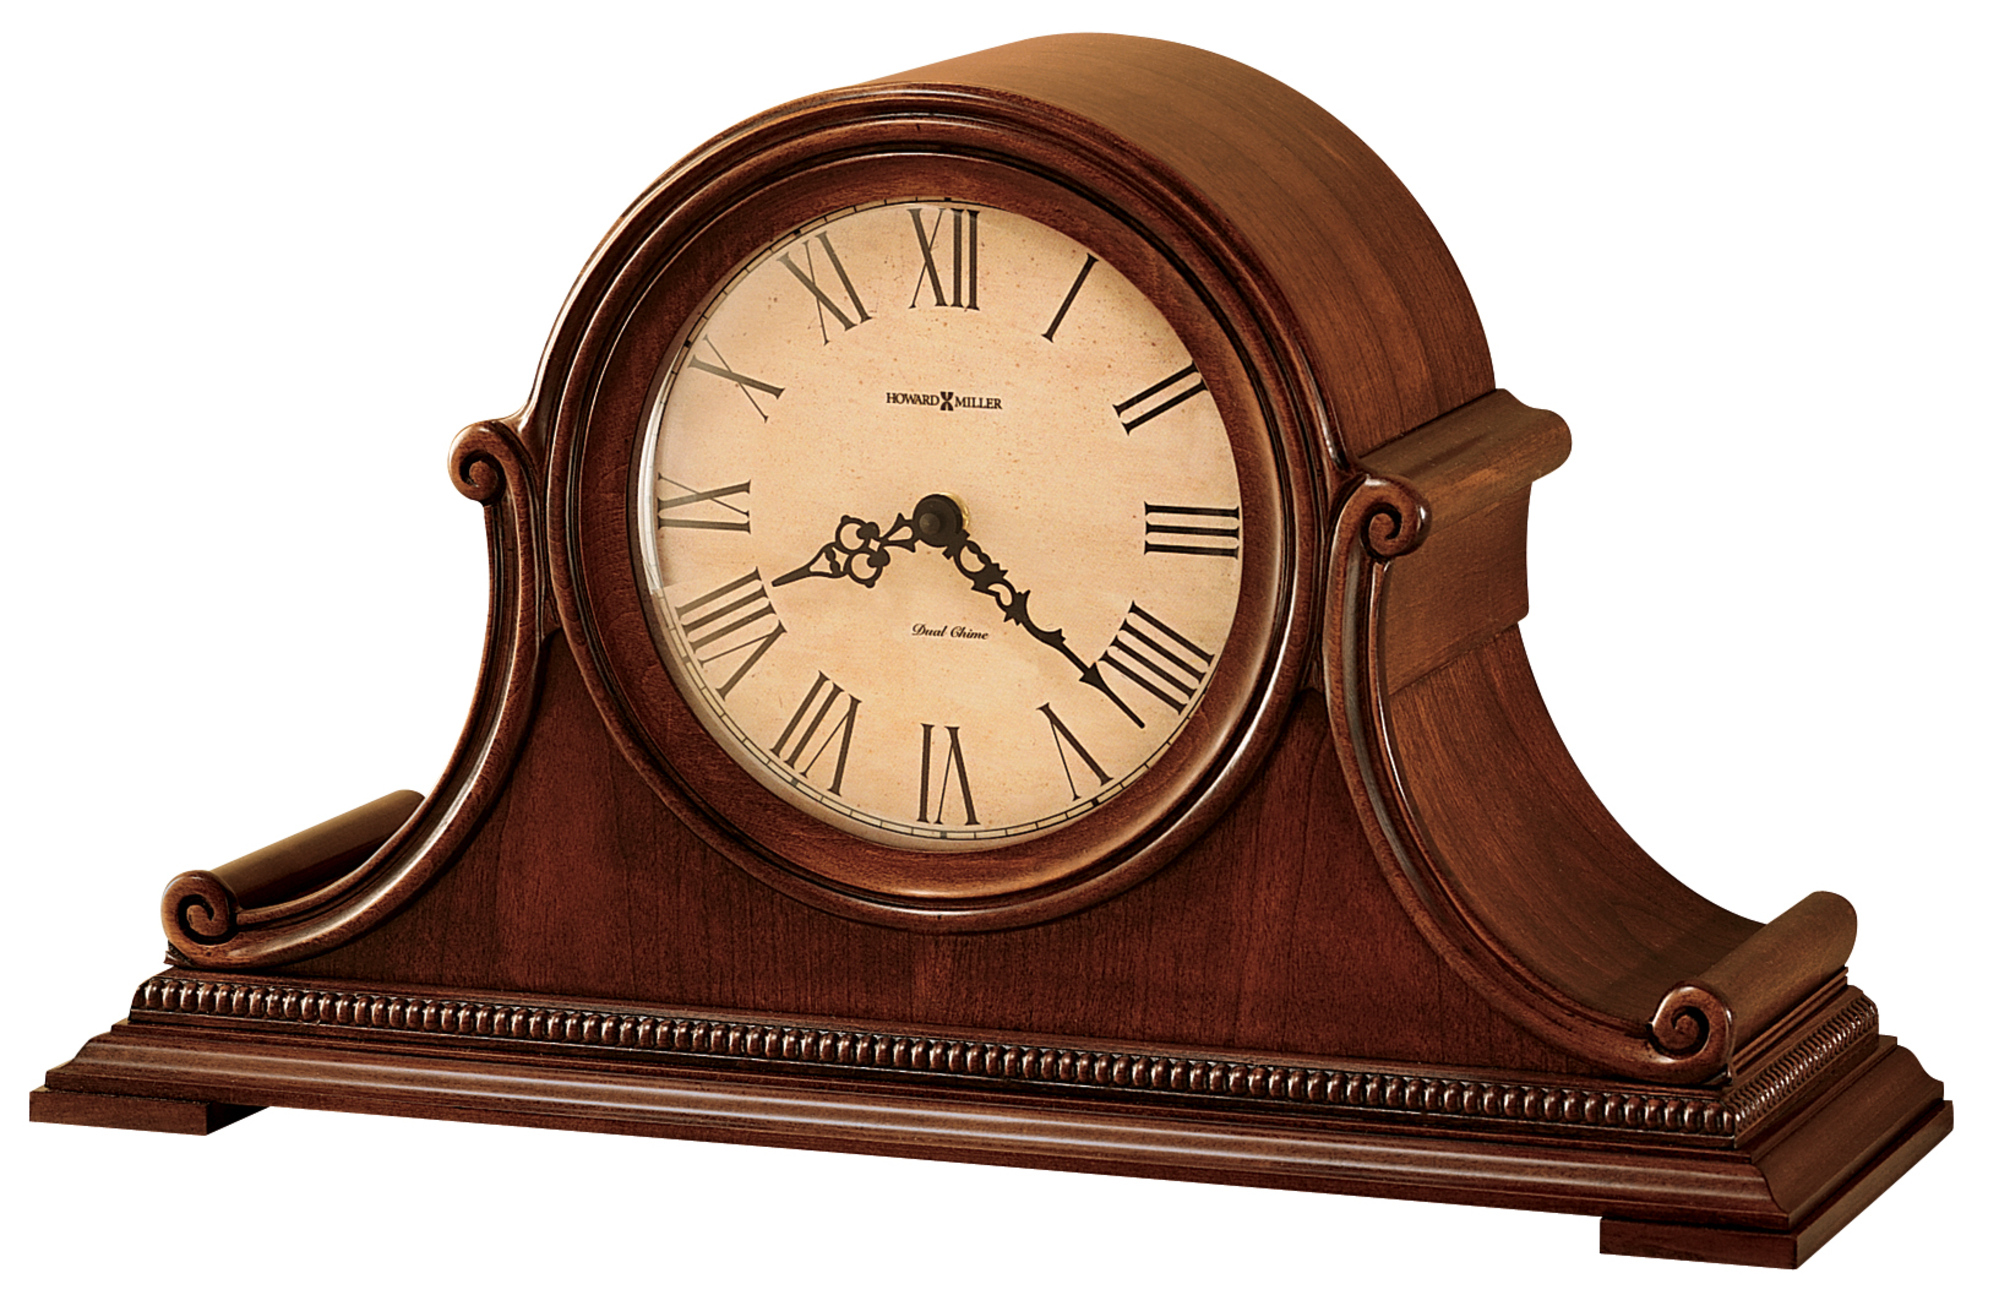 Howard Miller Hampton Mantel Clock at 1-800-4Clocks.com